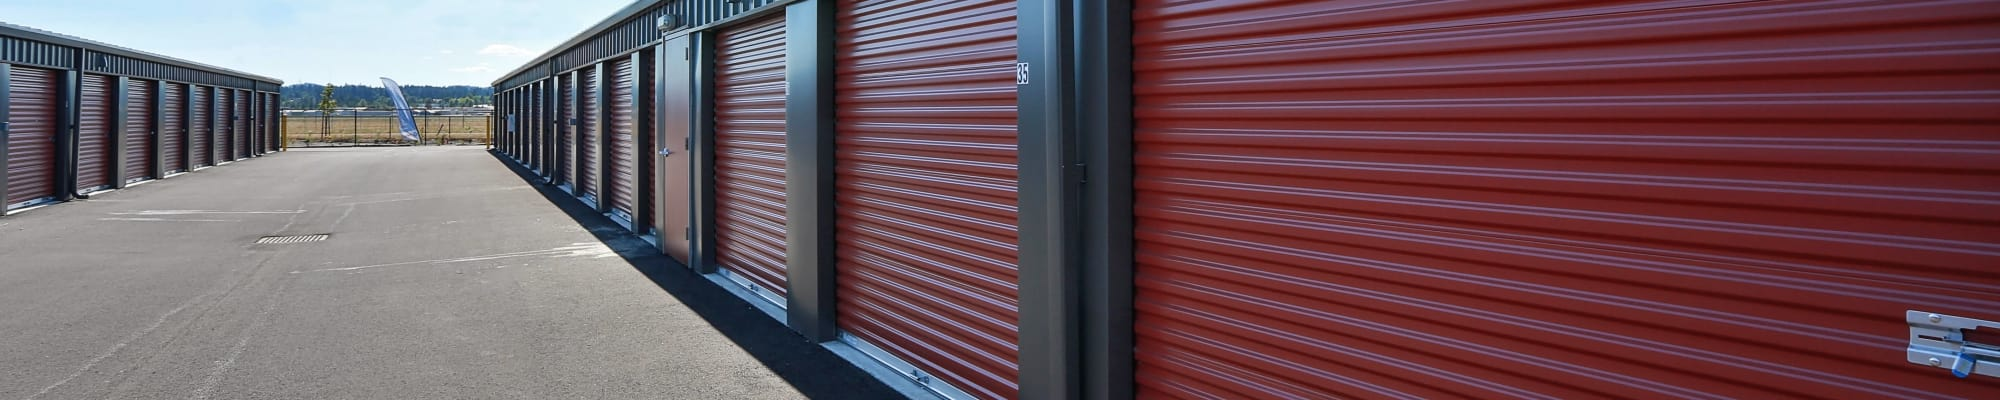 Self storage unit sizes and prices at Nest Self Storage in Salem, Oregon